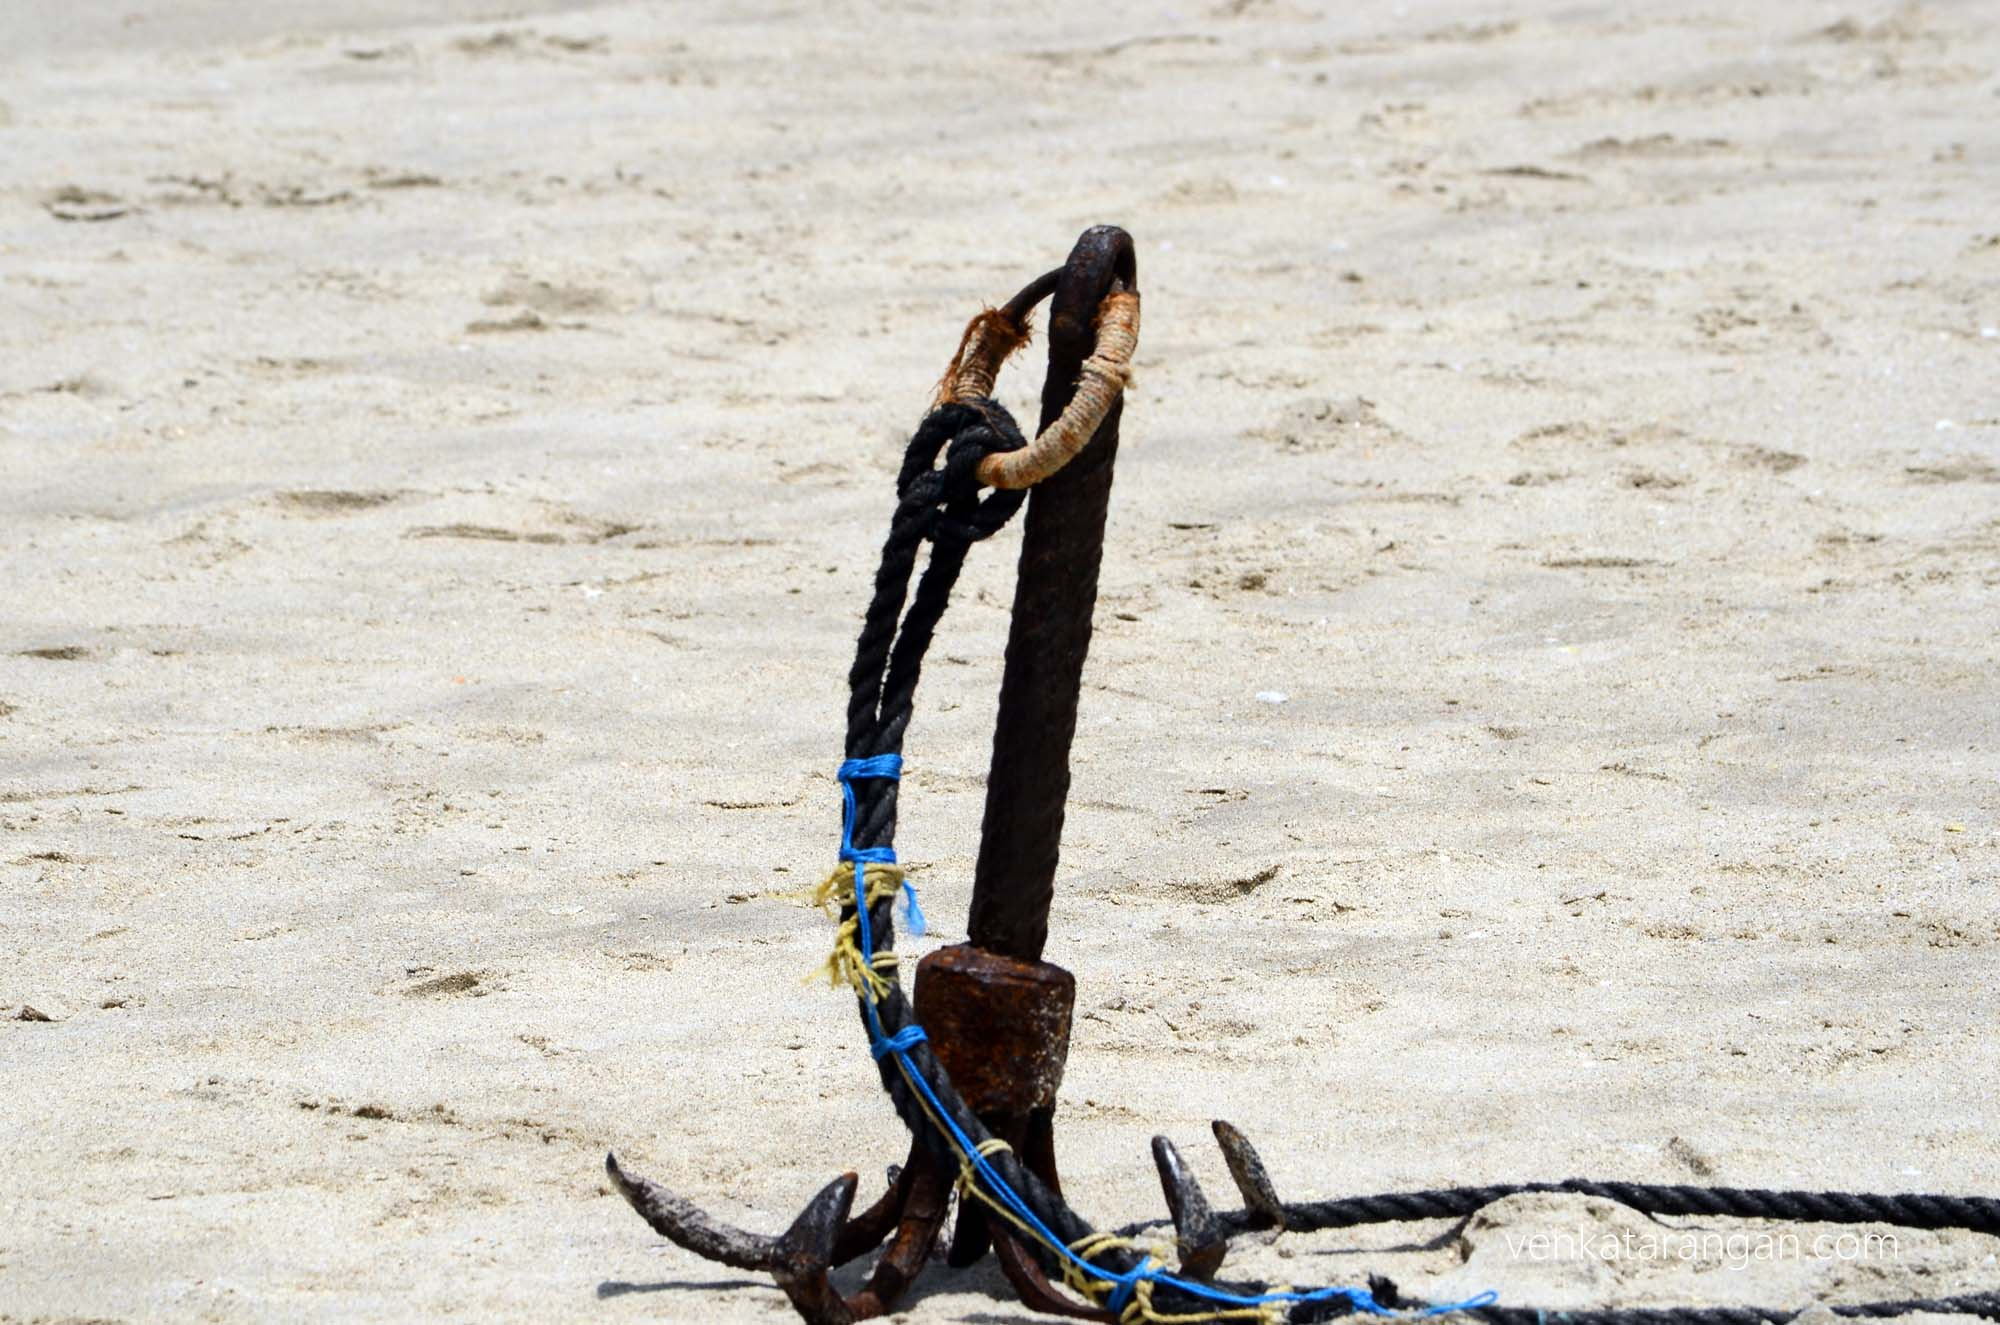 Anchor, rusted?